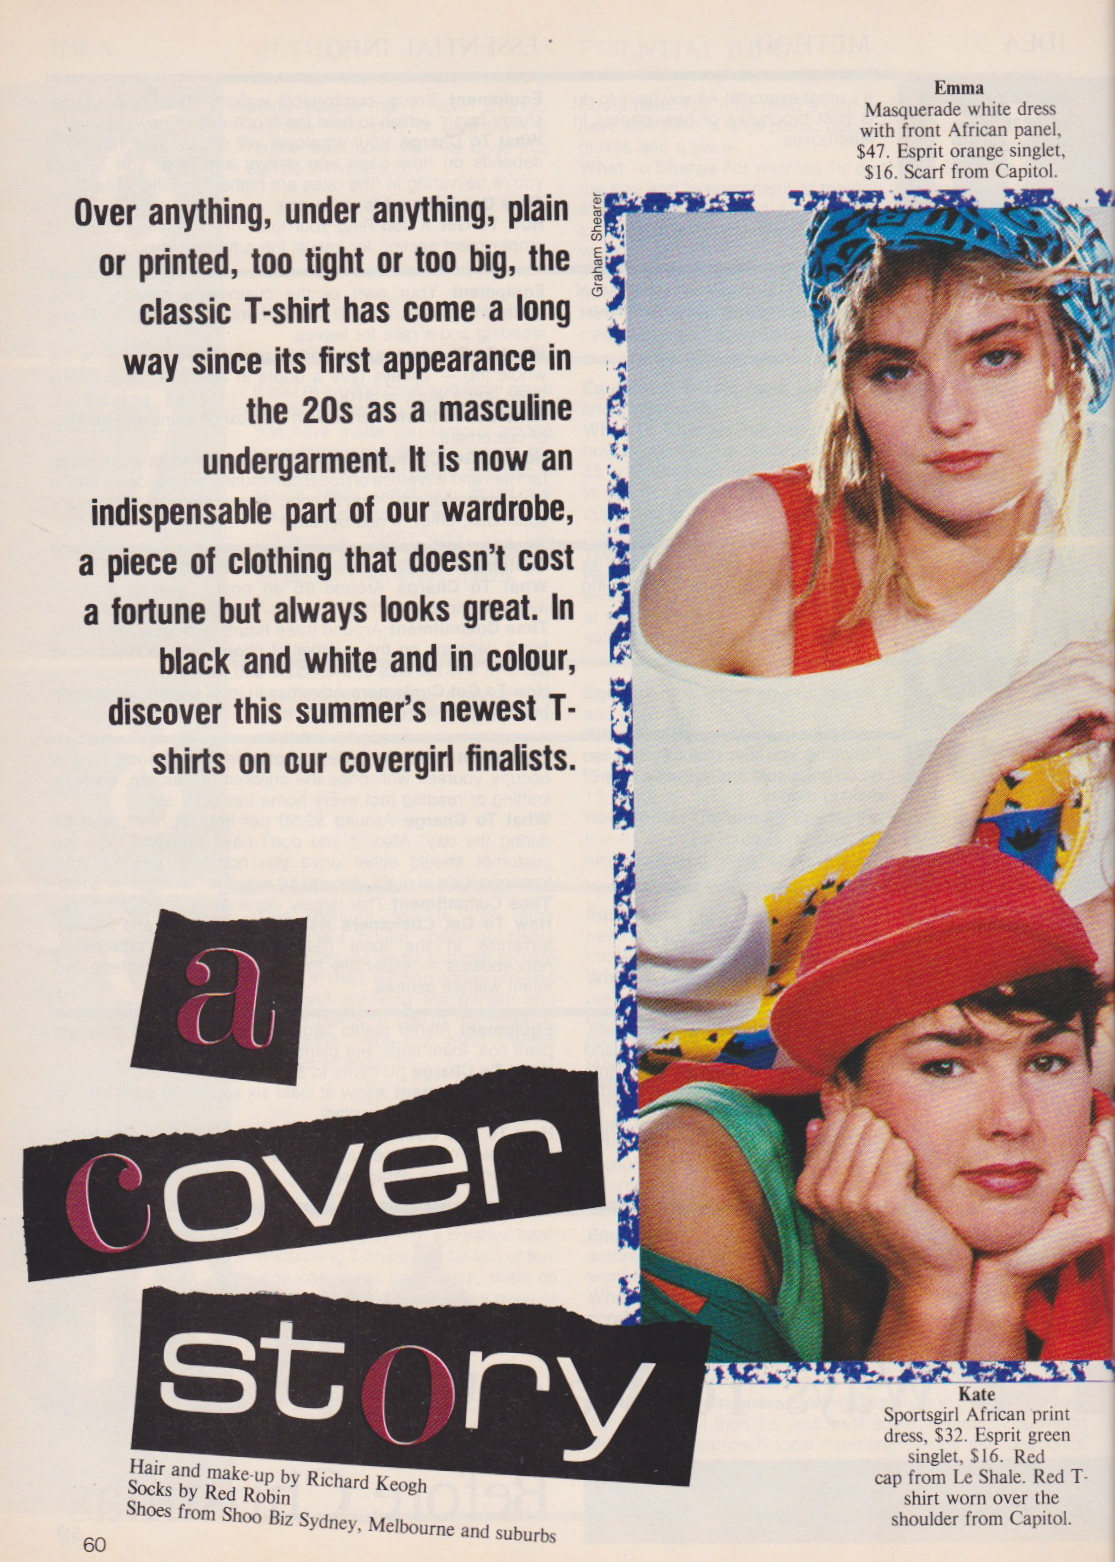 Dolly Covergirl Competition | 1984 Finalists Editorial 01.jpeg